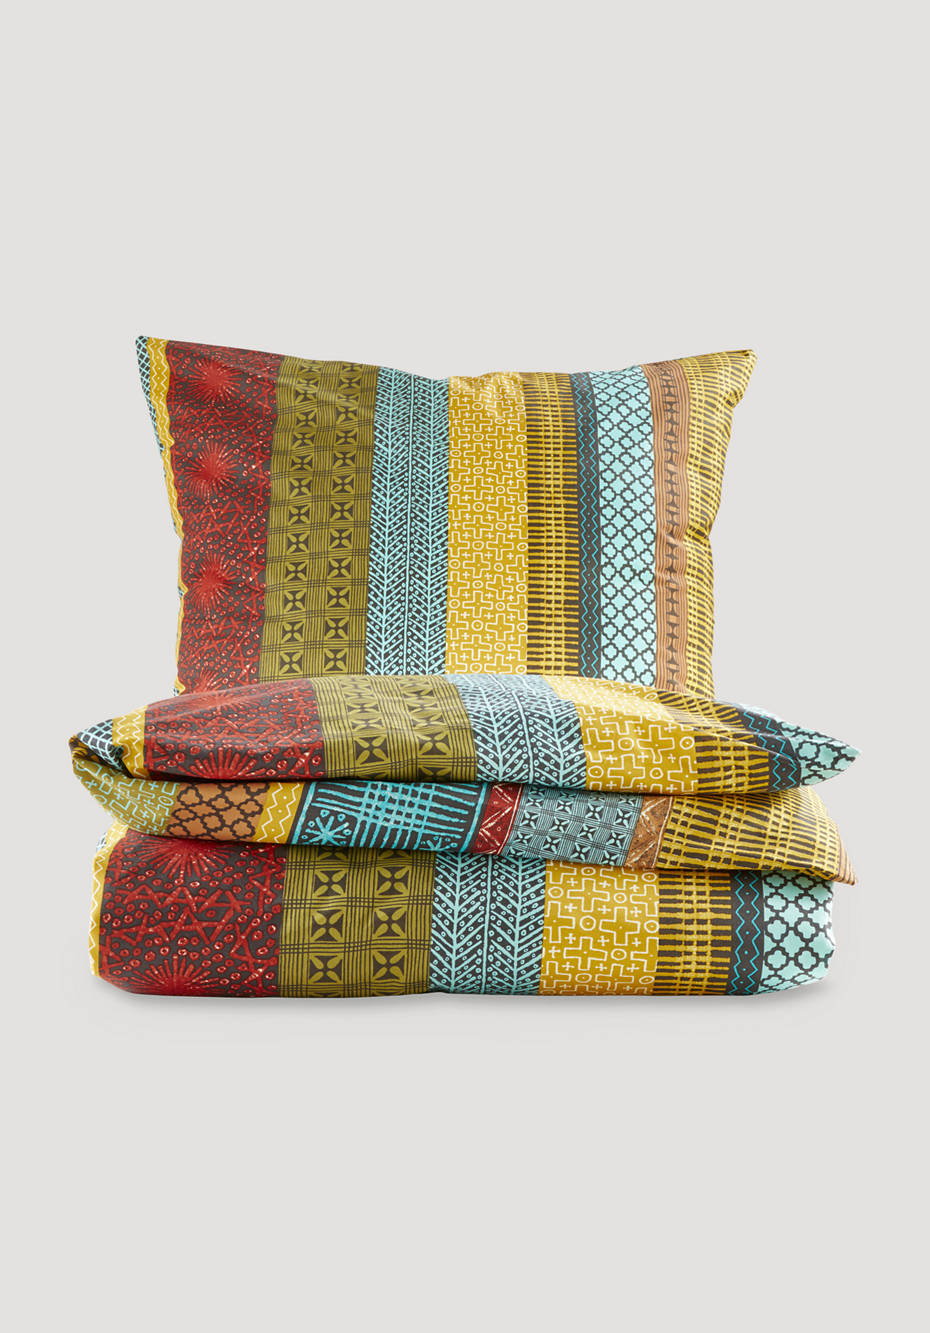 Renforcé Malawi bed linen made from pure organic cotton